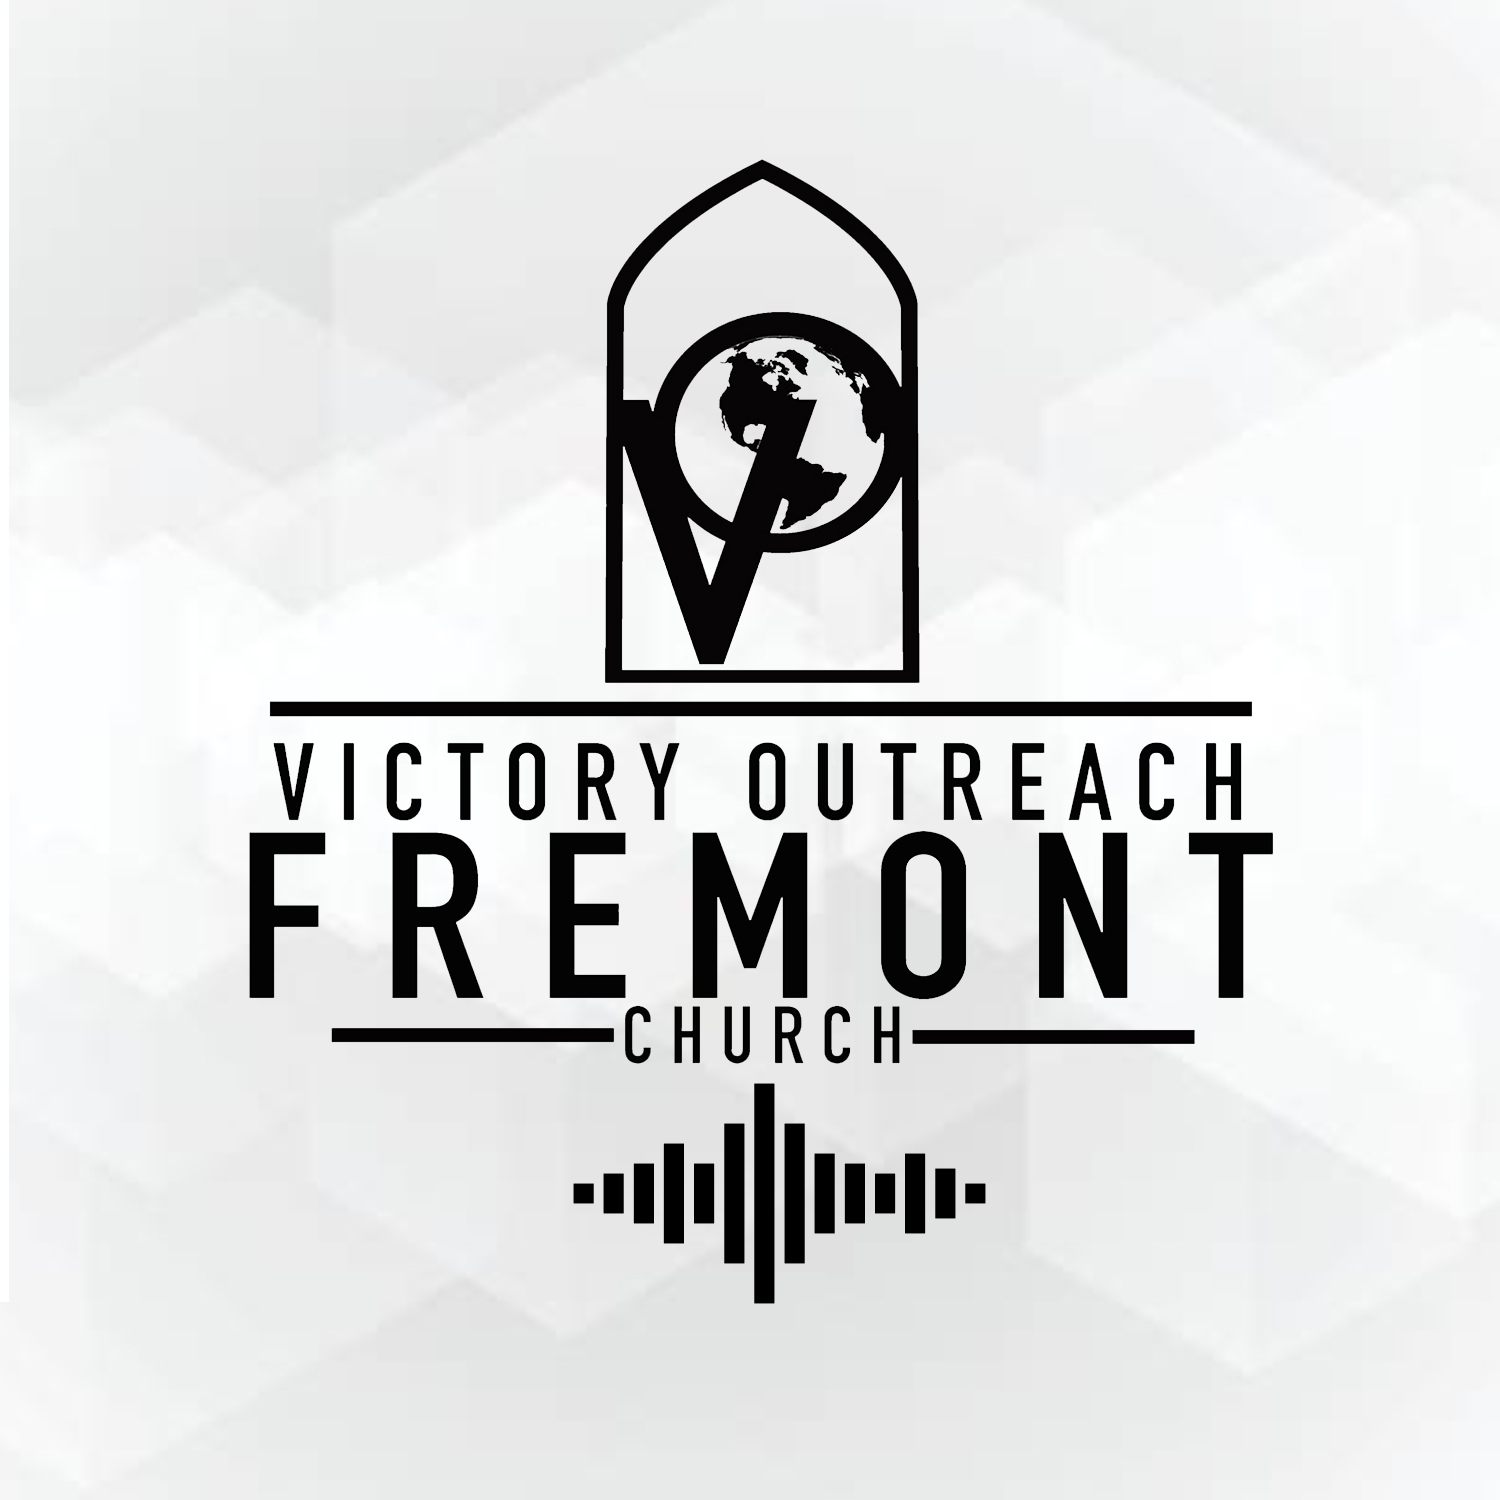 Victory Outreach Church  |  Fremont